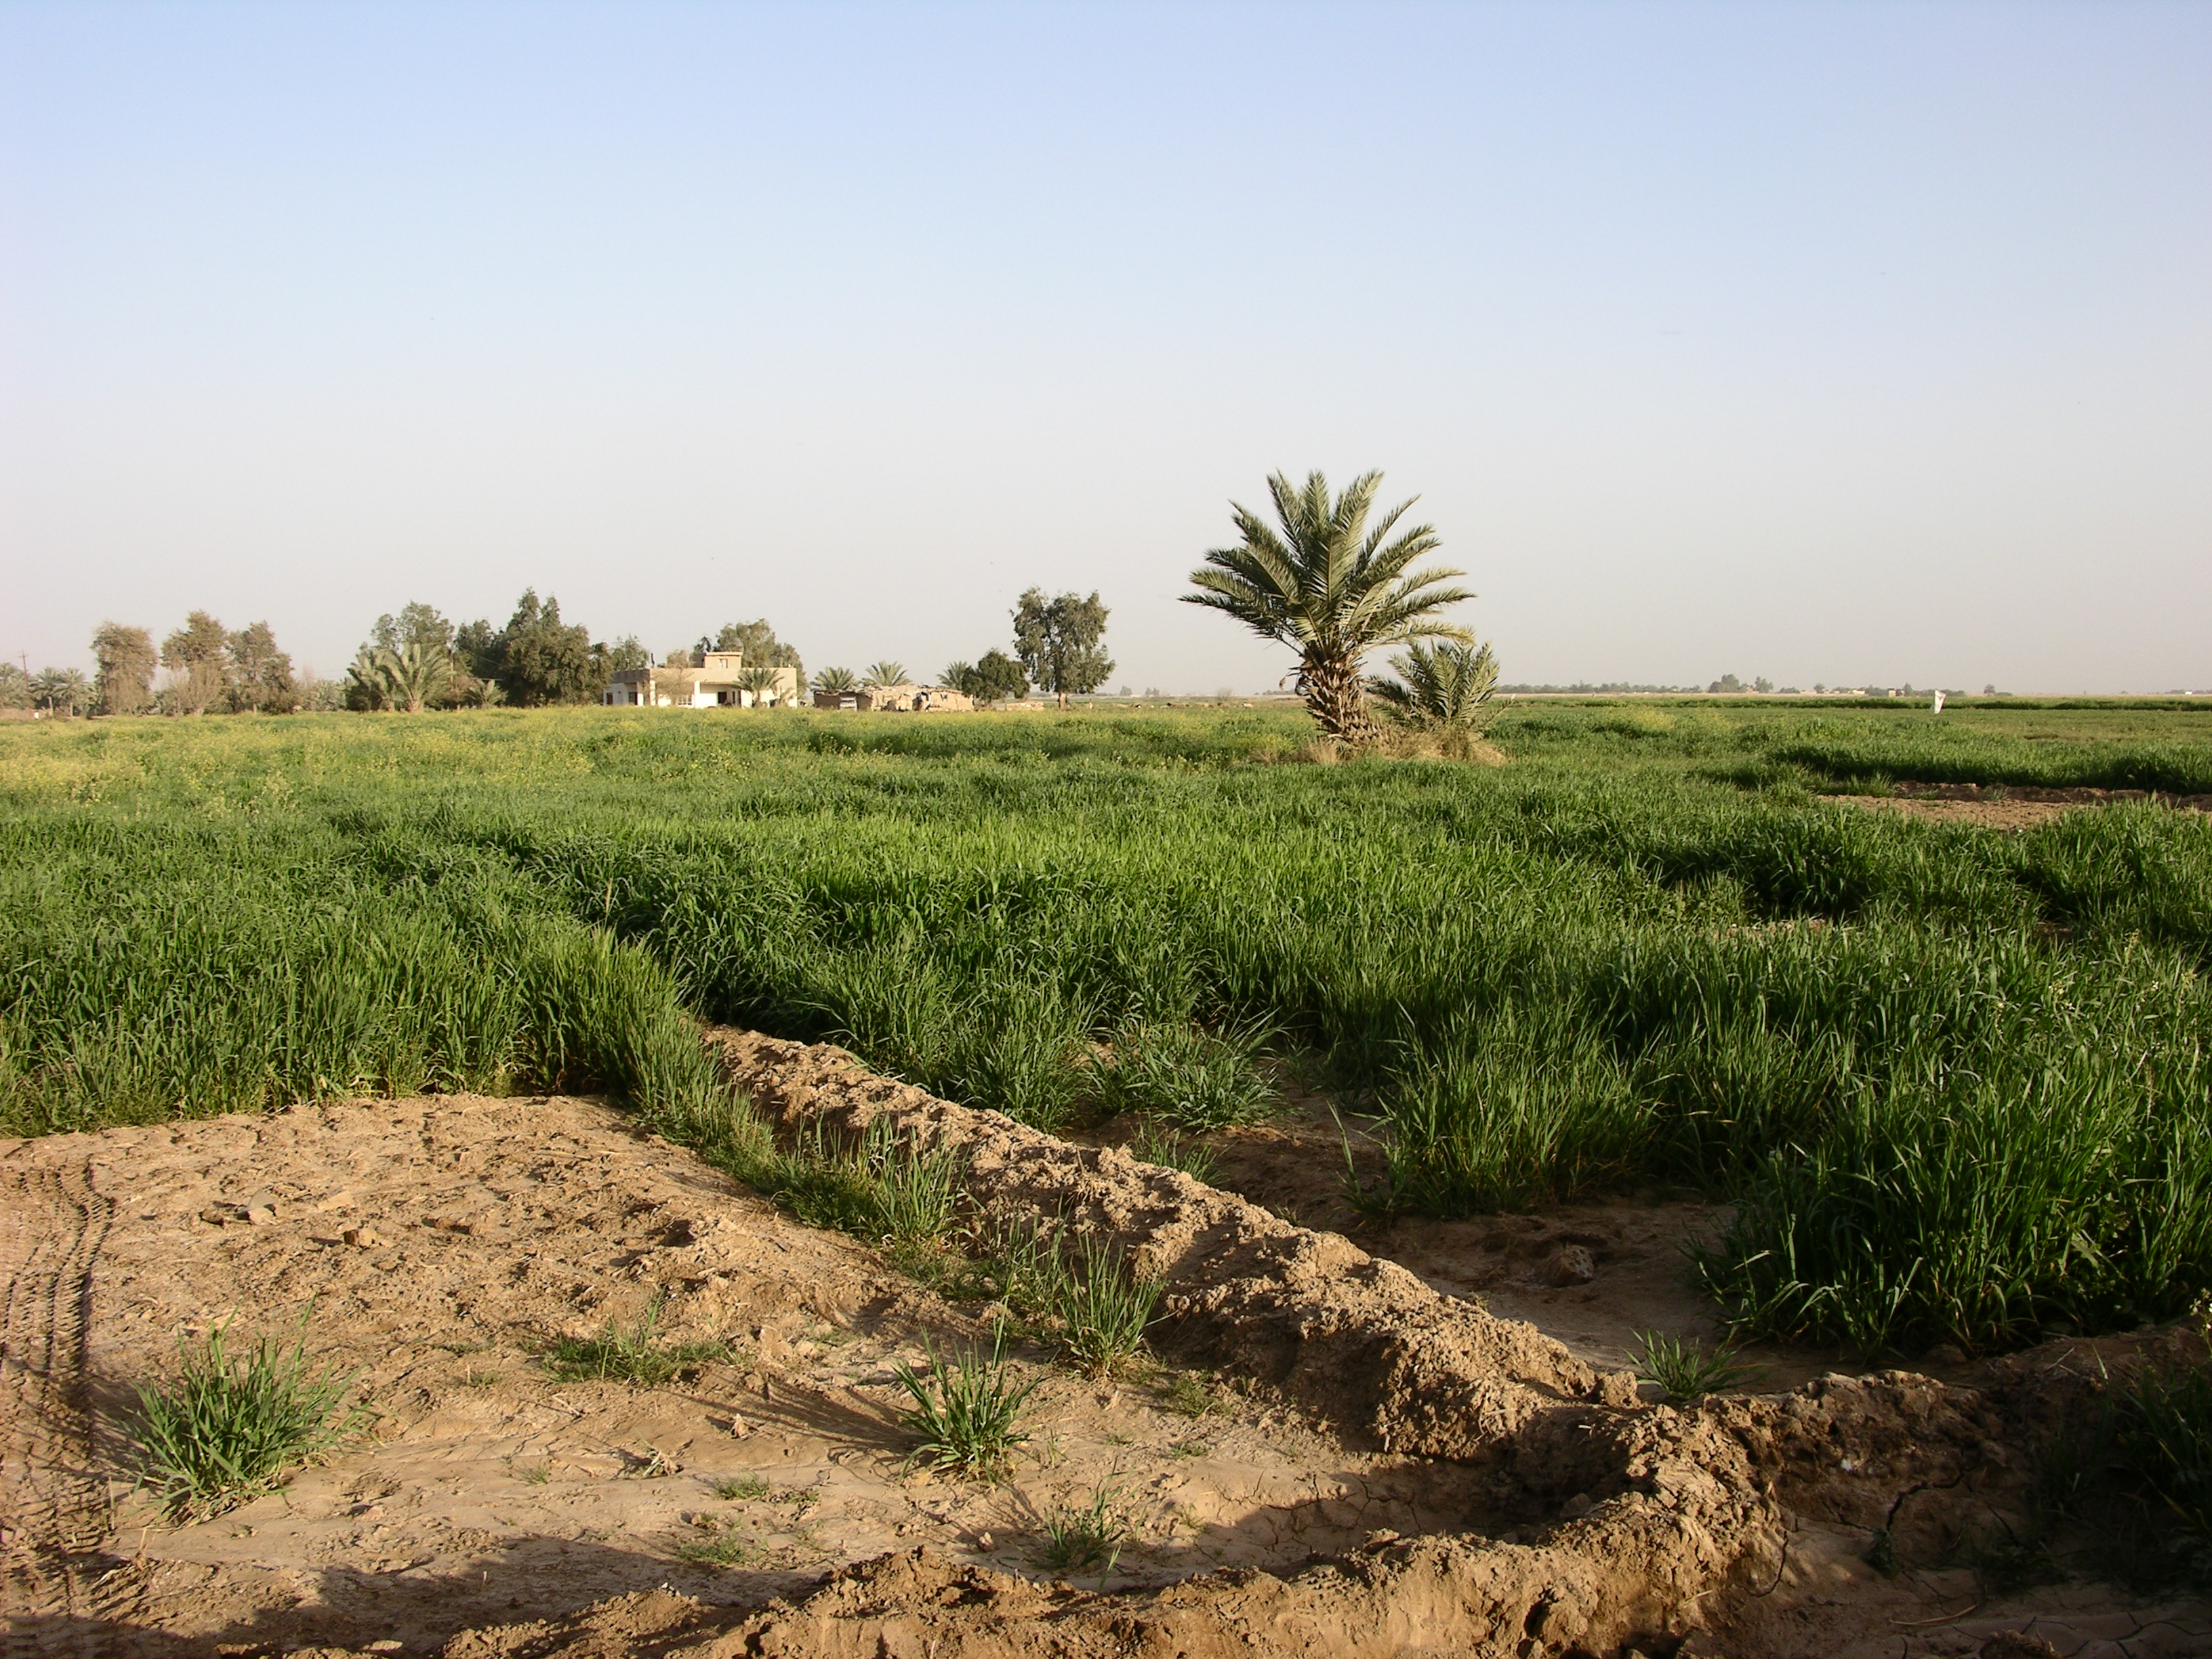 Iraq isn't all desert and urban cityscape. Iraq is the birthplace of irrigation, and agriculture has existed in the region for over ten thousand years.